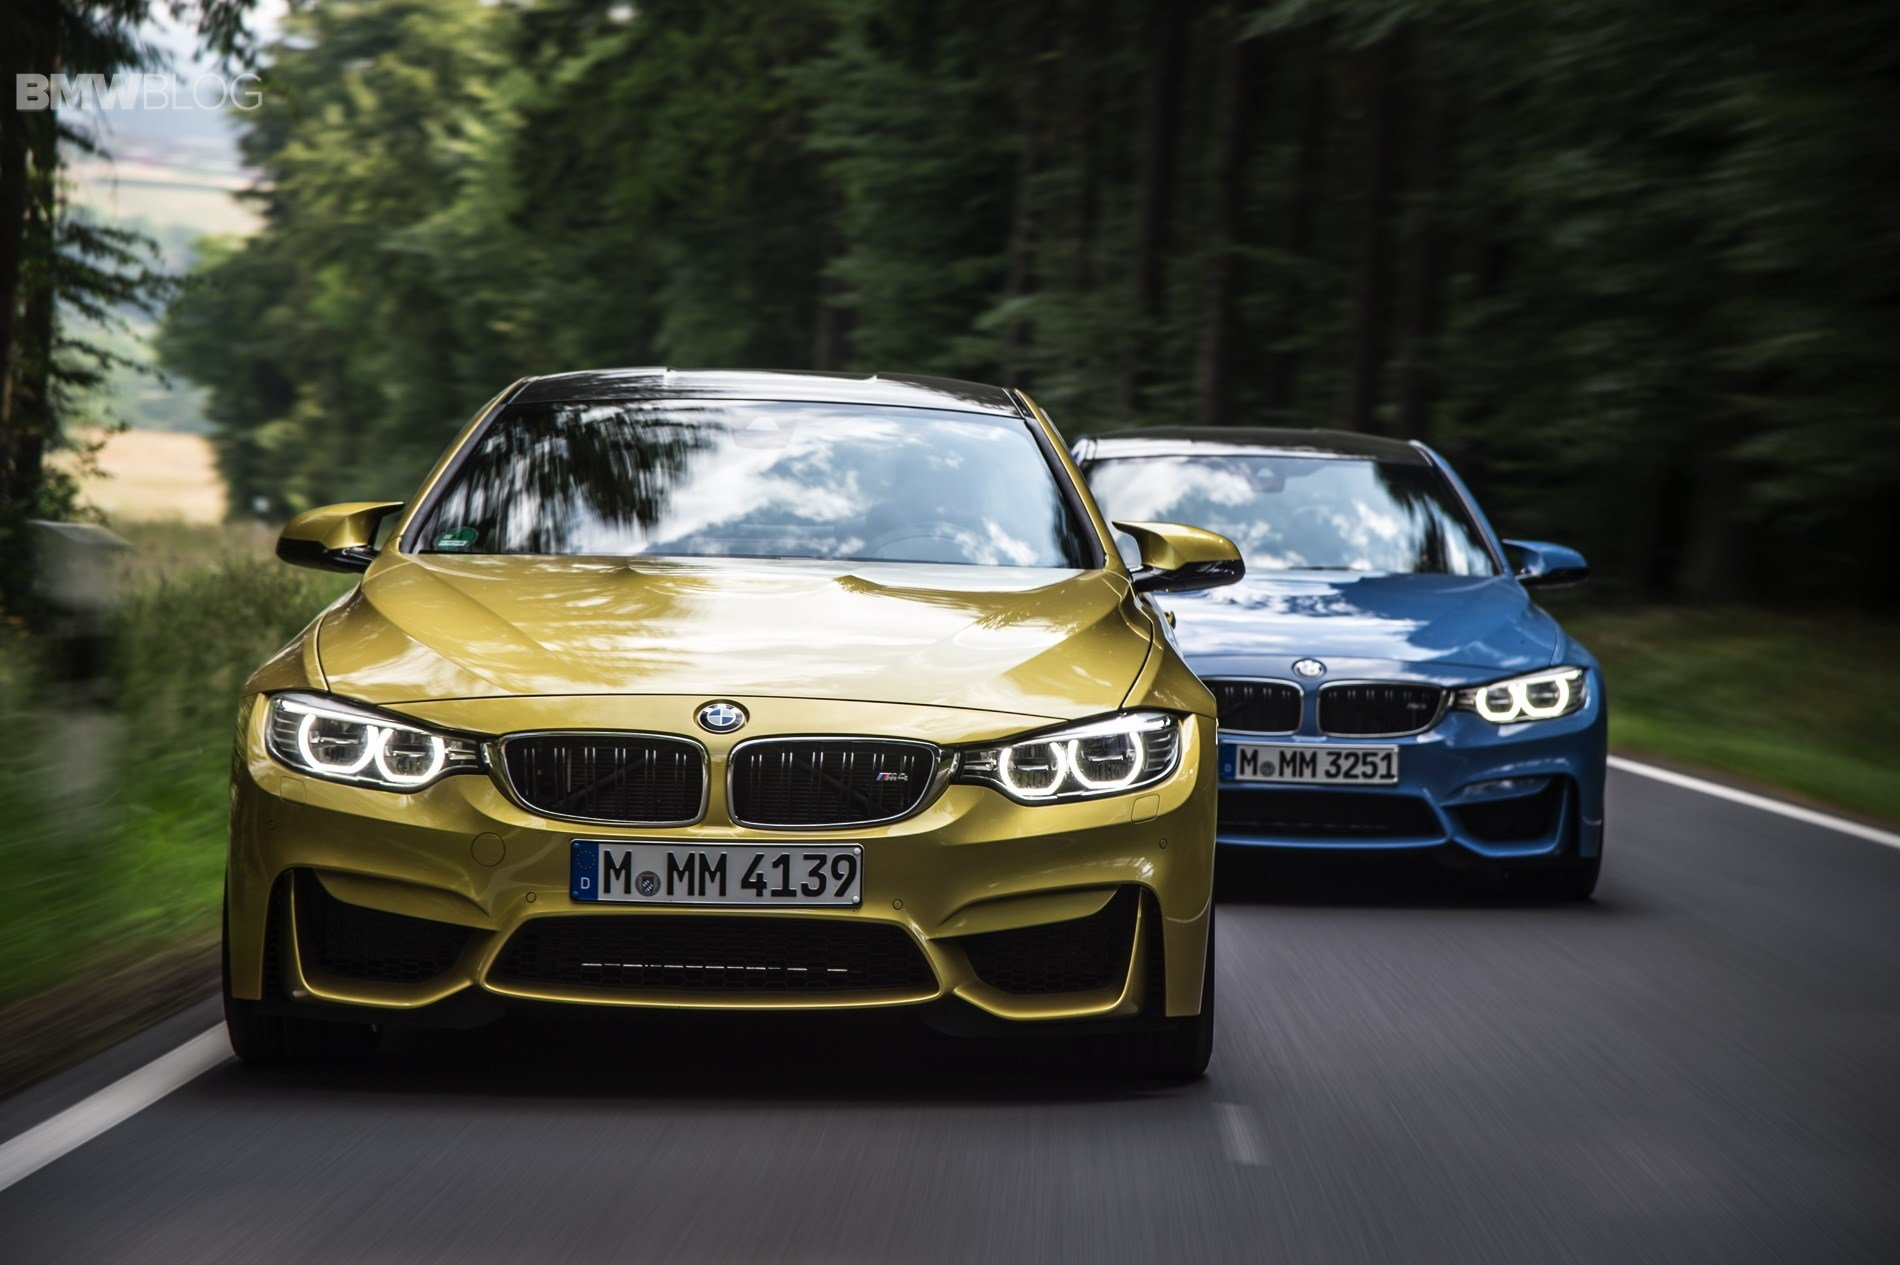 Latest Bmw Blog Your Daily Bmw News Photos Videos And Test Drives Free Download